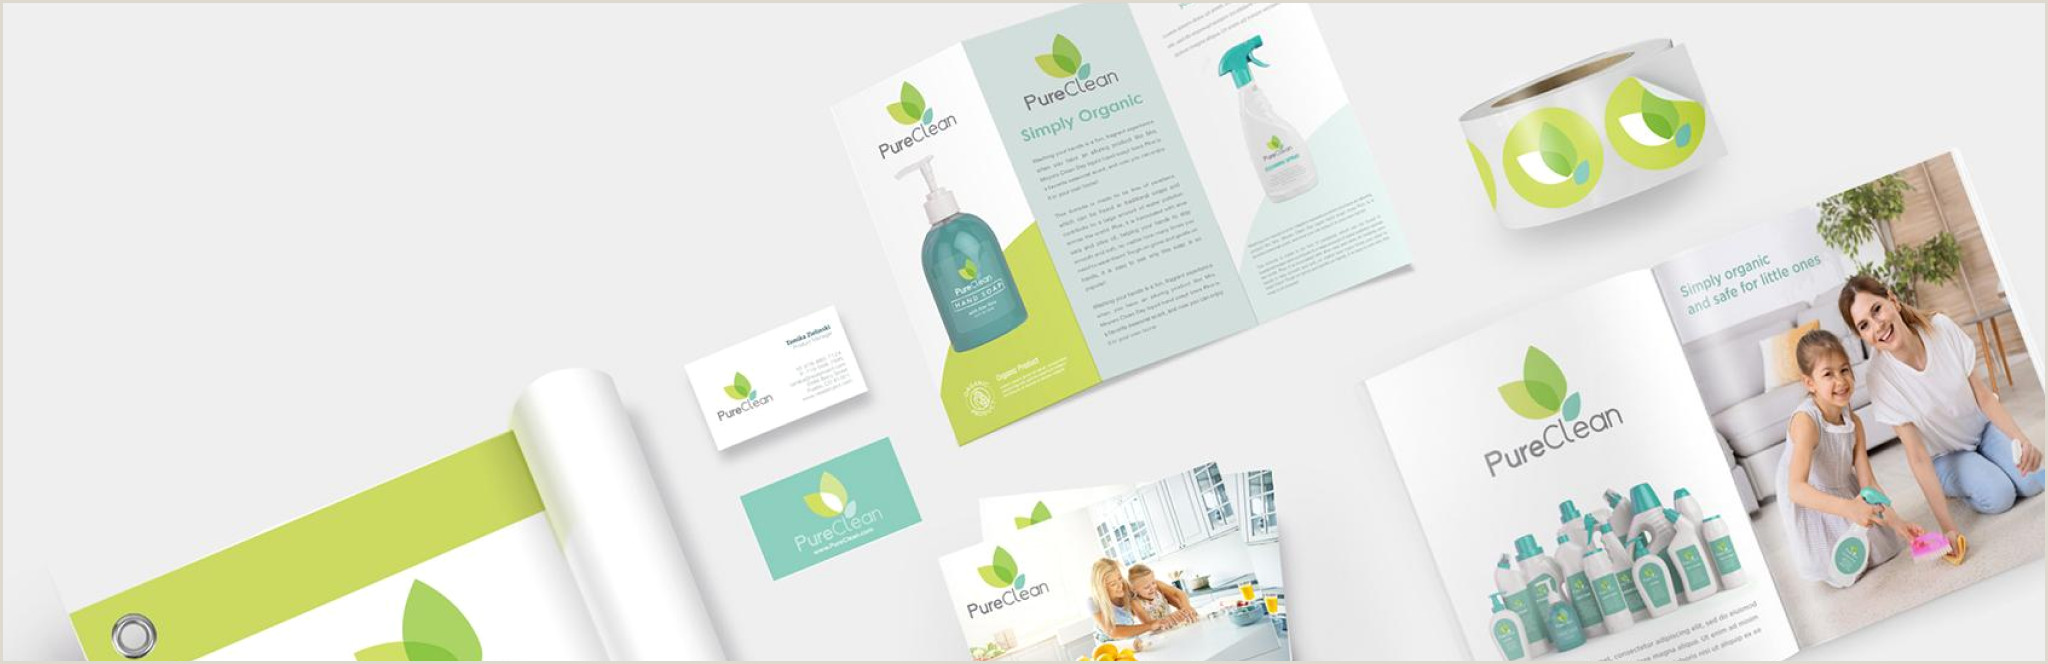 Best Business Cards Los Angeles Printplace High Quality Line Printing Services